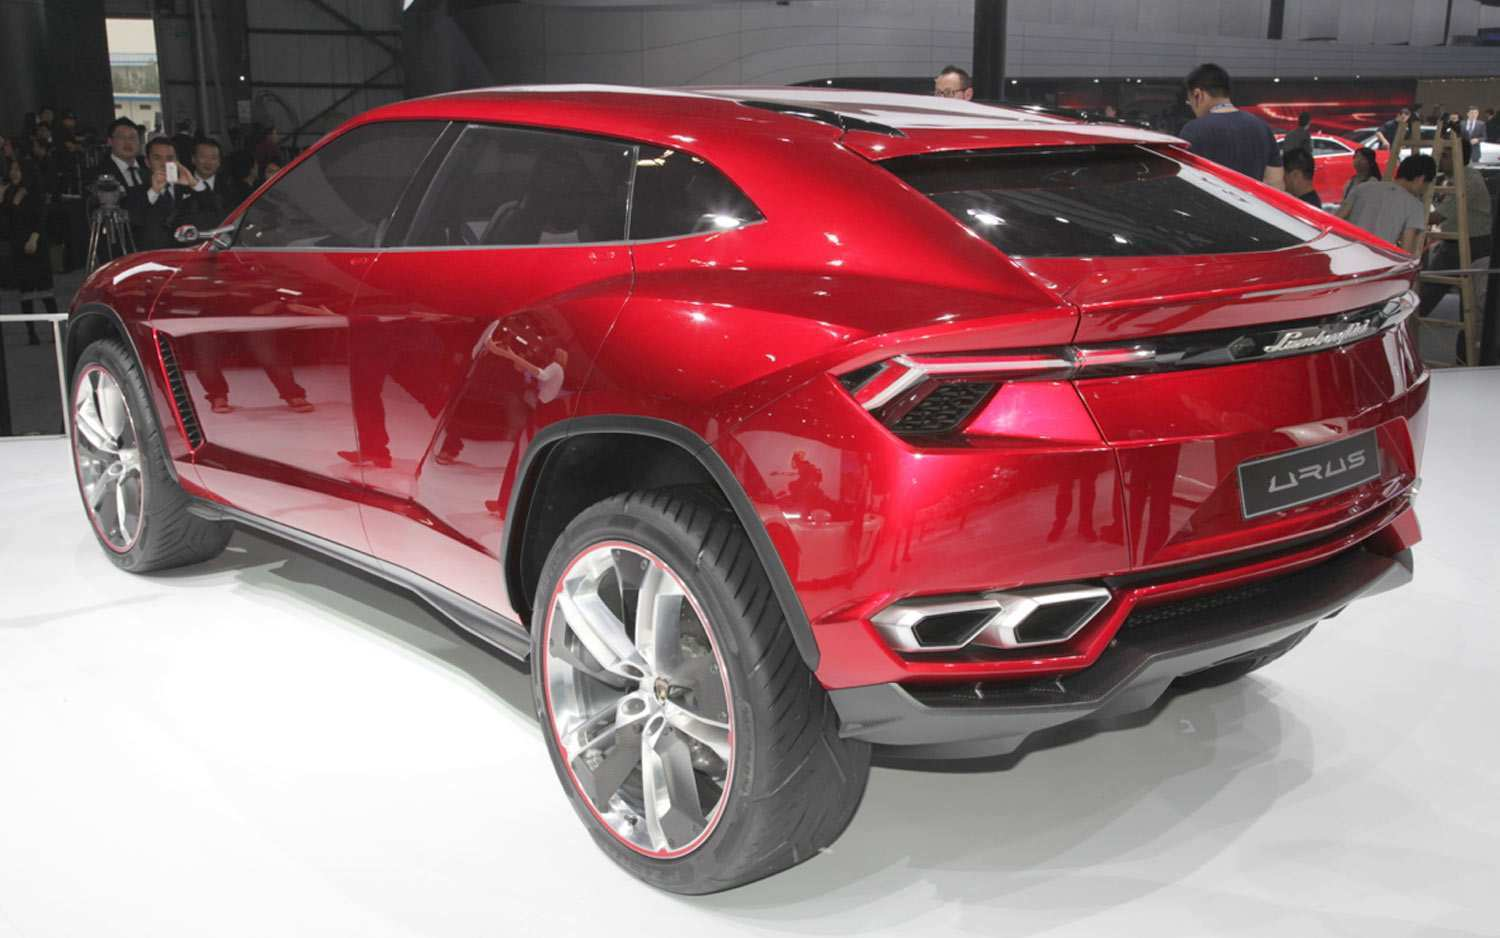 18 Concept of 2020 Lamborghini Suv First Drive with 2020 Lamborghini Suv